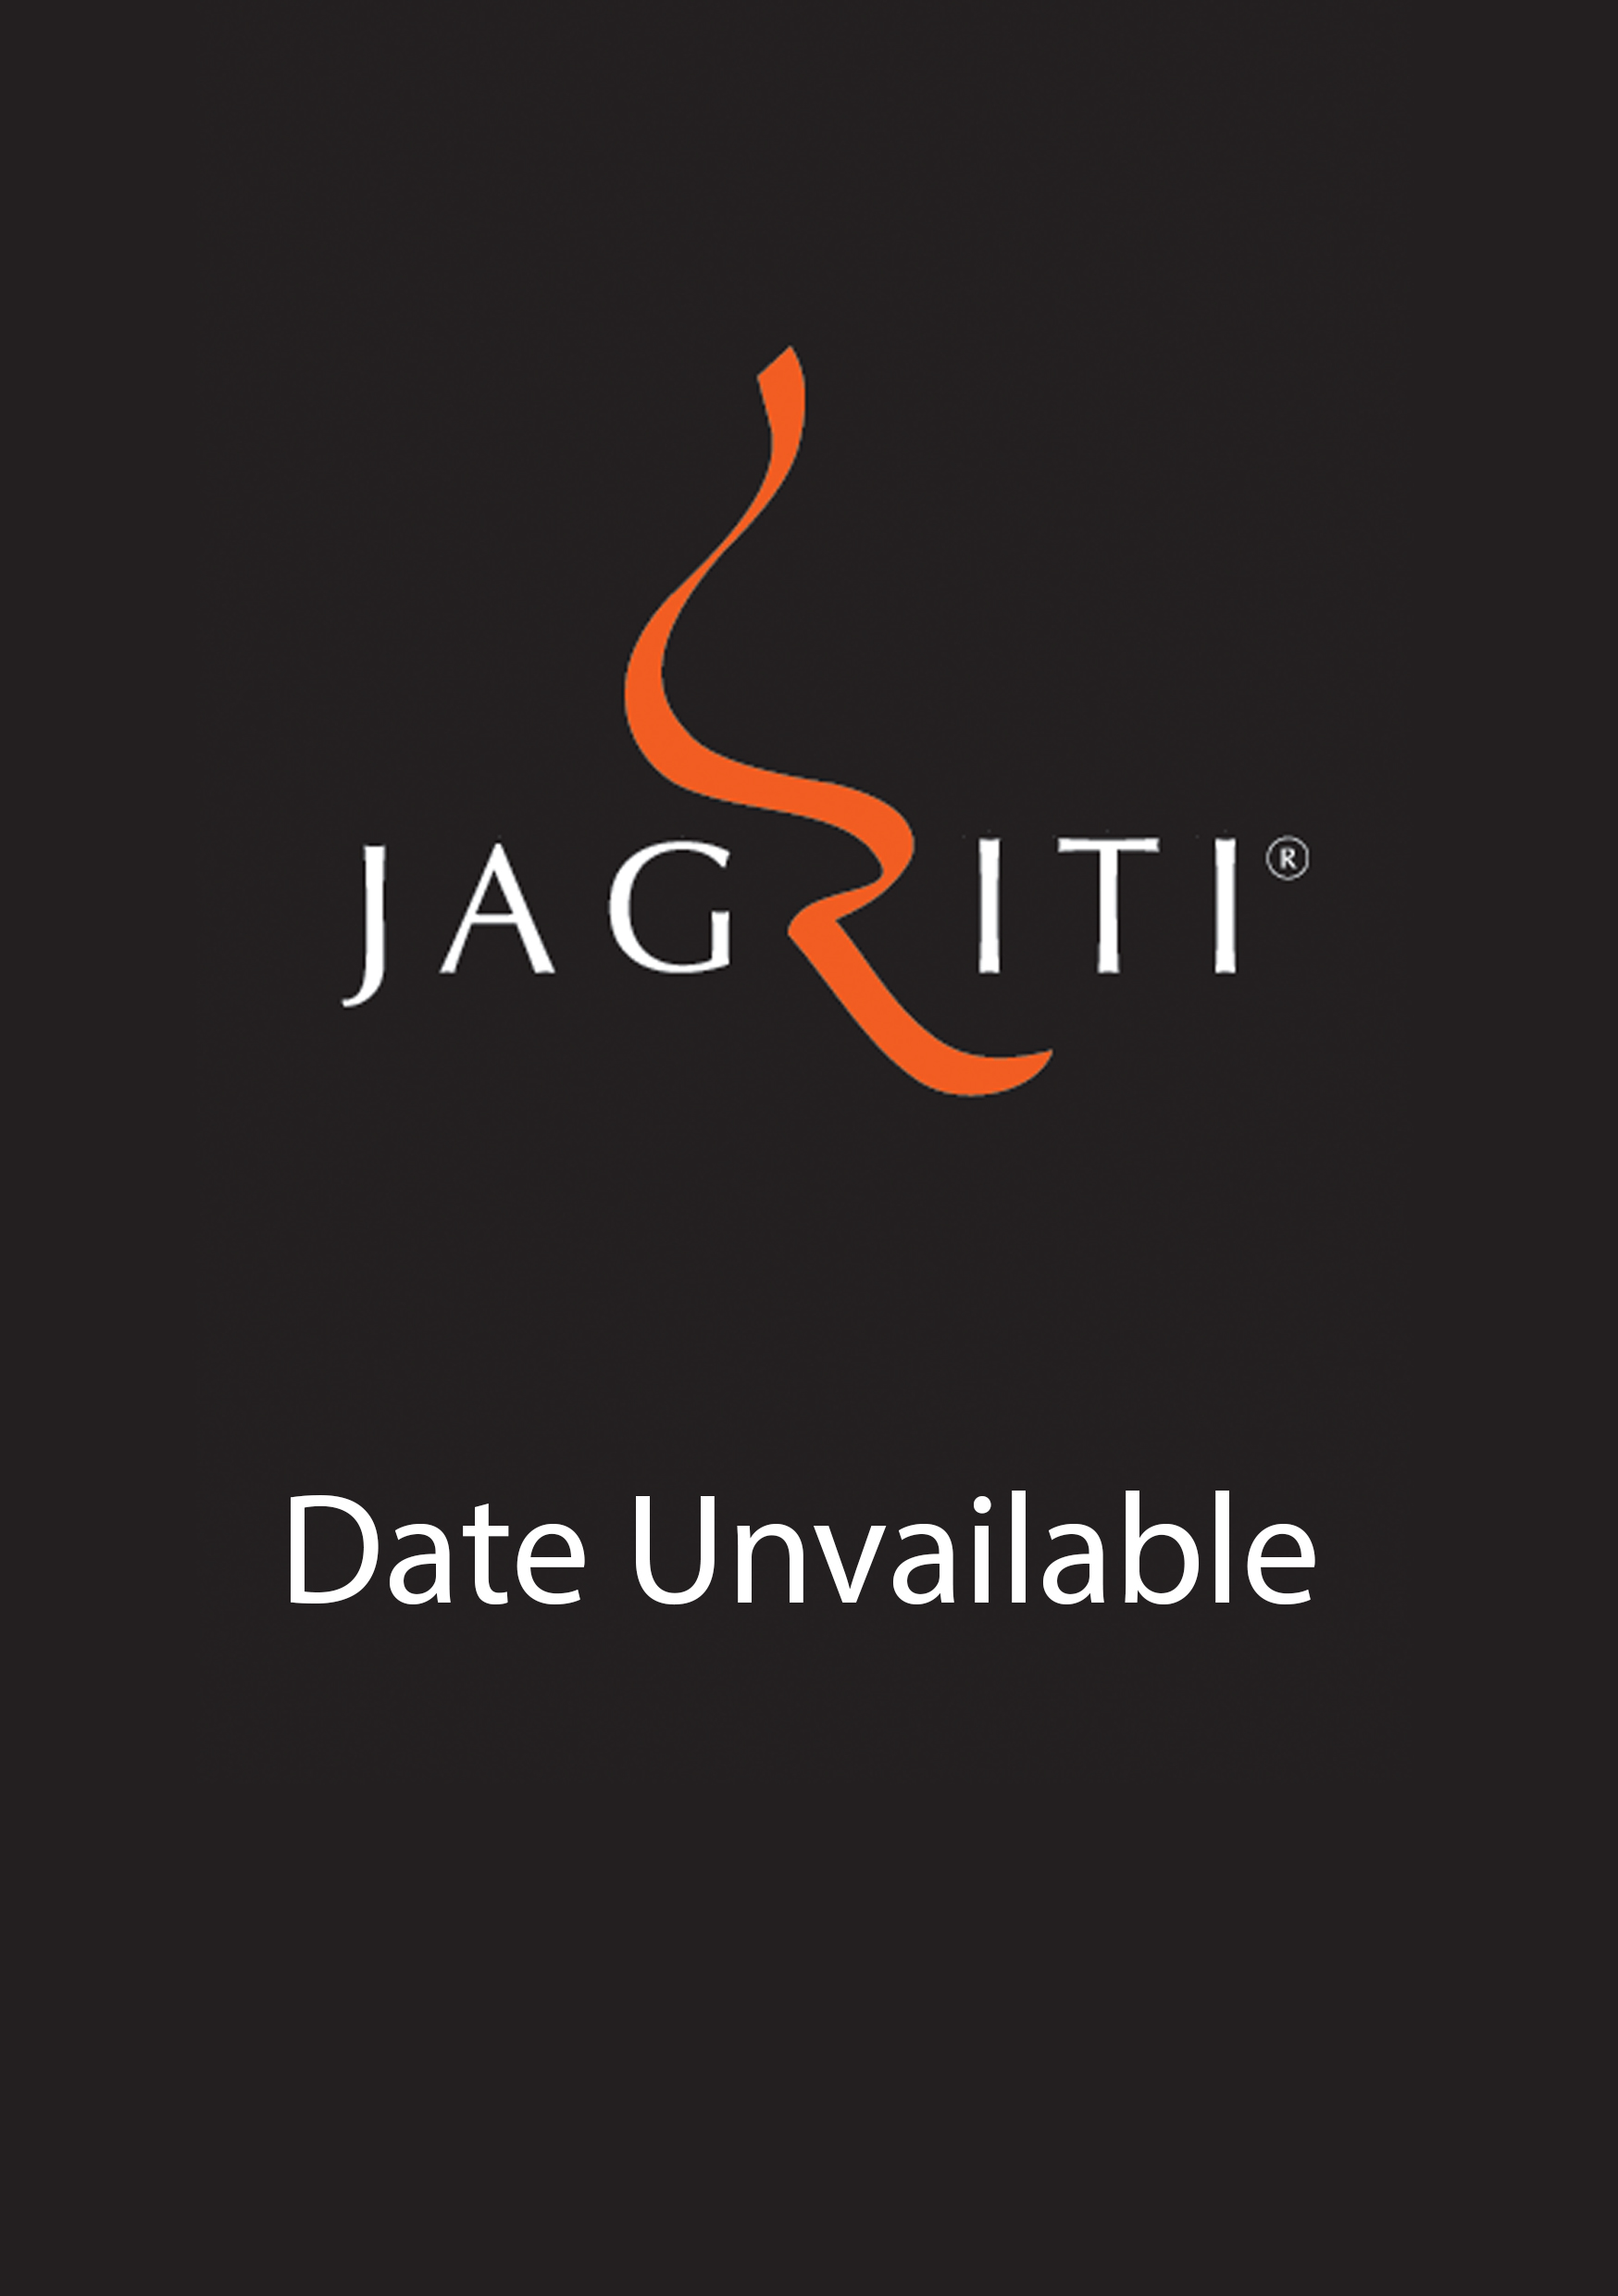 THIS DATE IS UNAVAILABLE